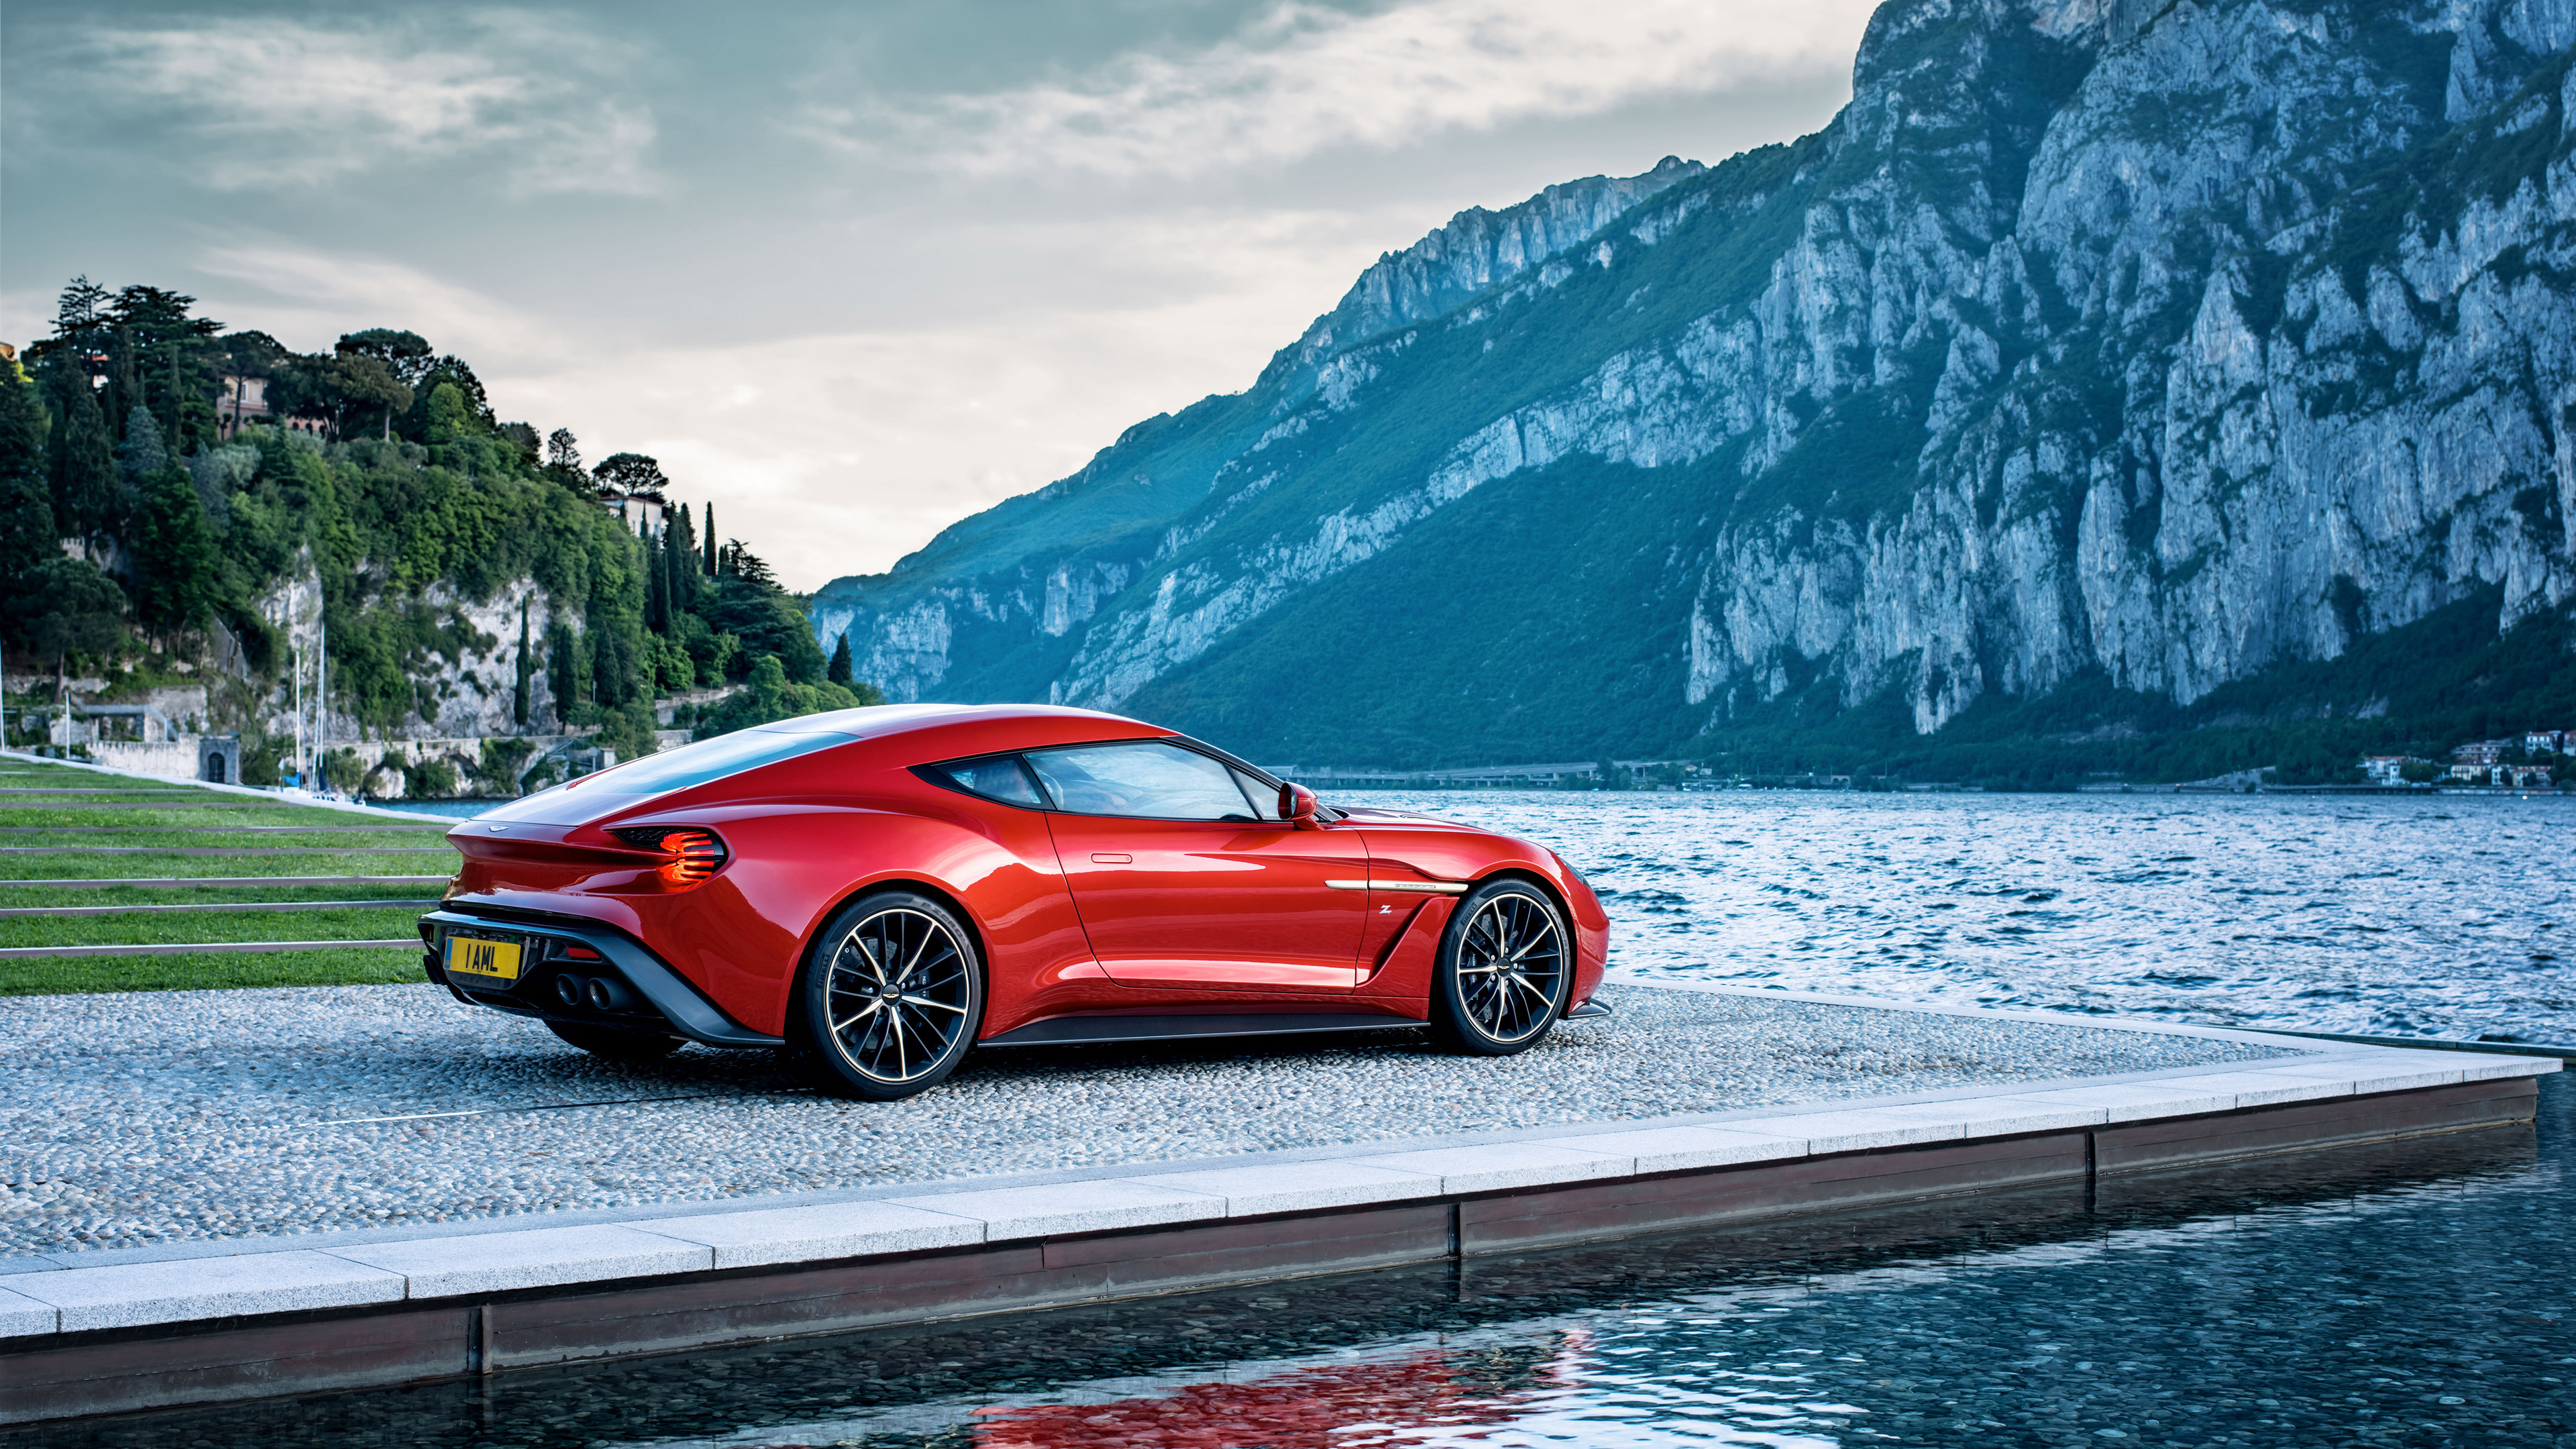 Aston Martin Vanquish Hd Hd Cars 4k Wallpapers Images Backgrounds Photos And Pictures